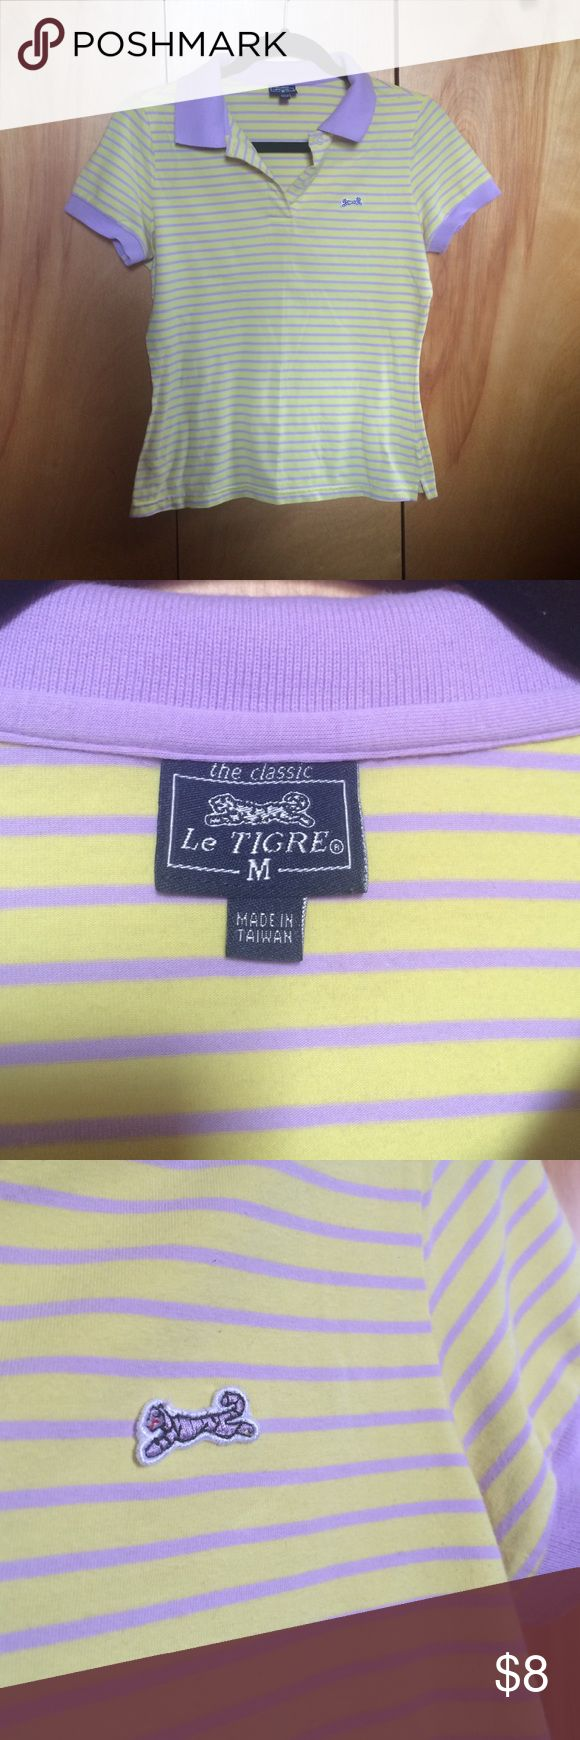 Le Tigre Collared Shirt Purple and yellow striped Le Tigre shirt, size medium. Fits more like a small. Has slight pilling under armpits, but has been worn 3-4x. Soft fabric and super comfortable! Le Tigre Tops